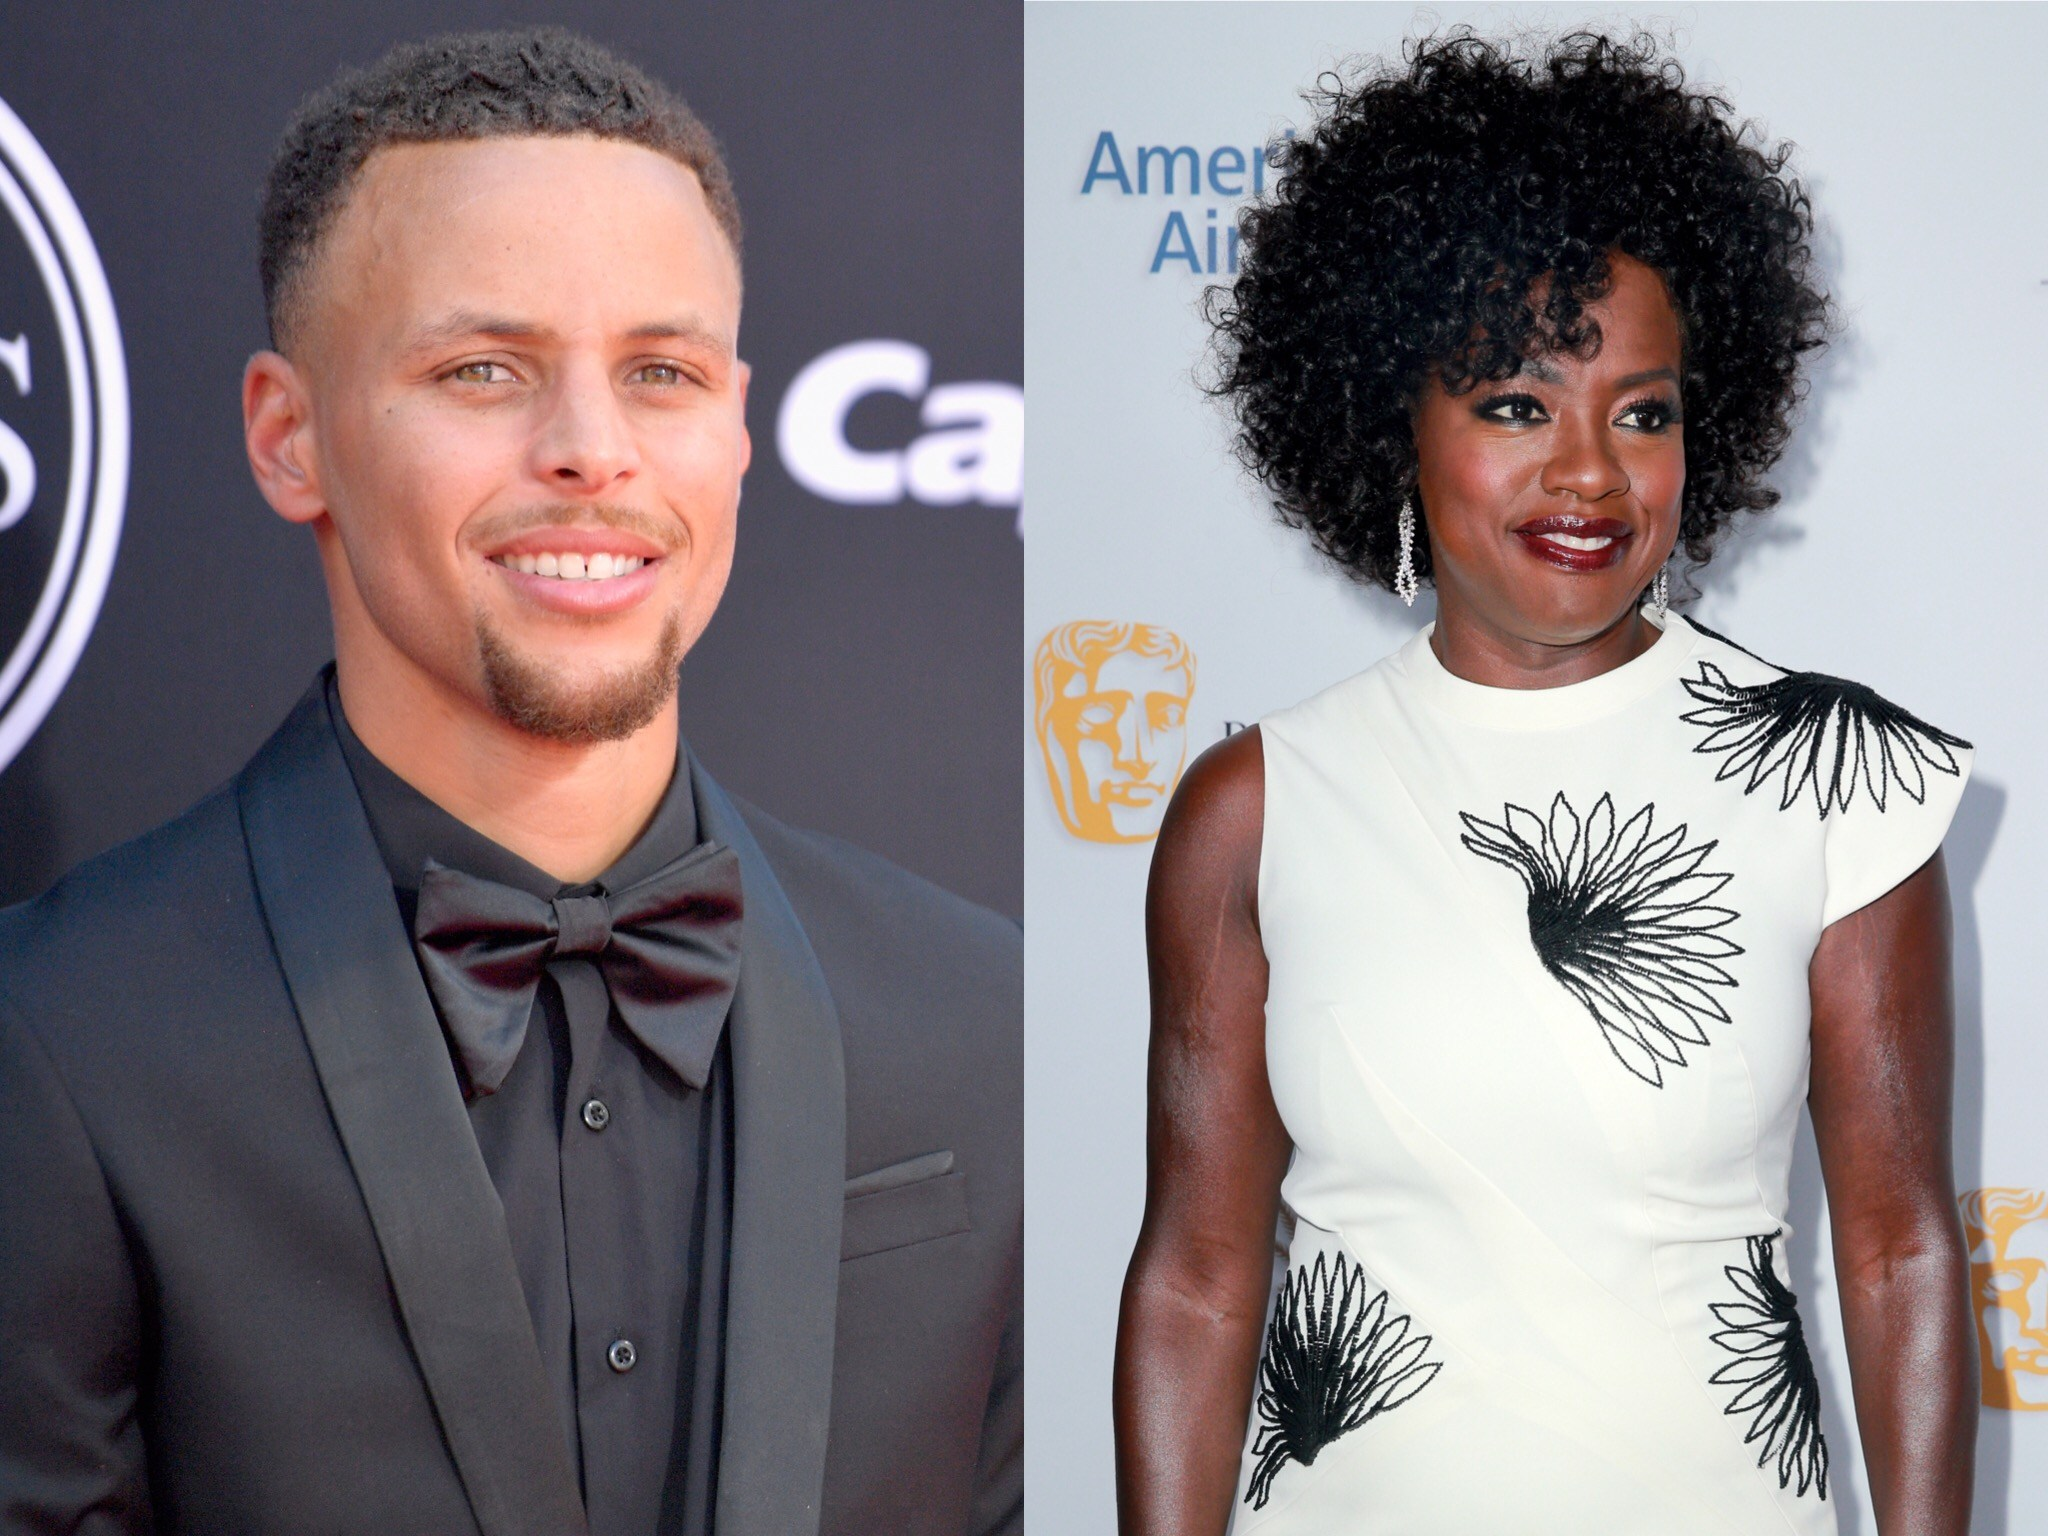 Steph Curry And Viola Davis To Executive Produce A Documentary About The Charleston Church Shooting